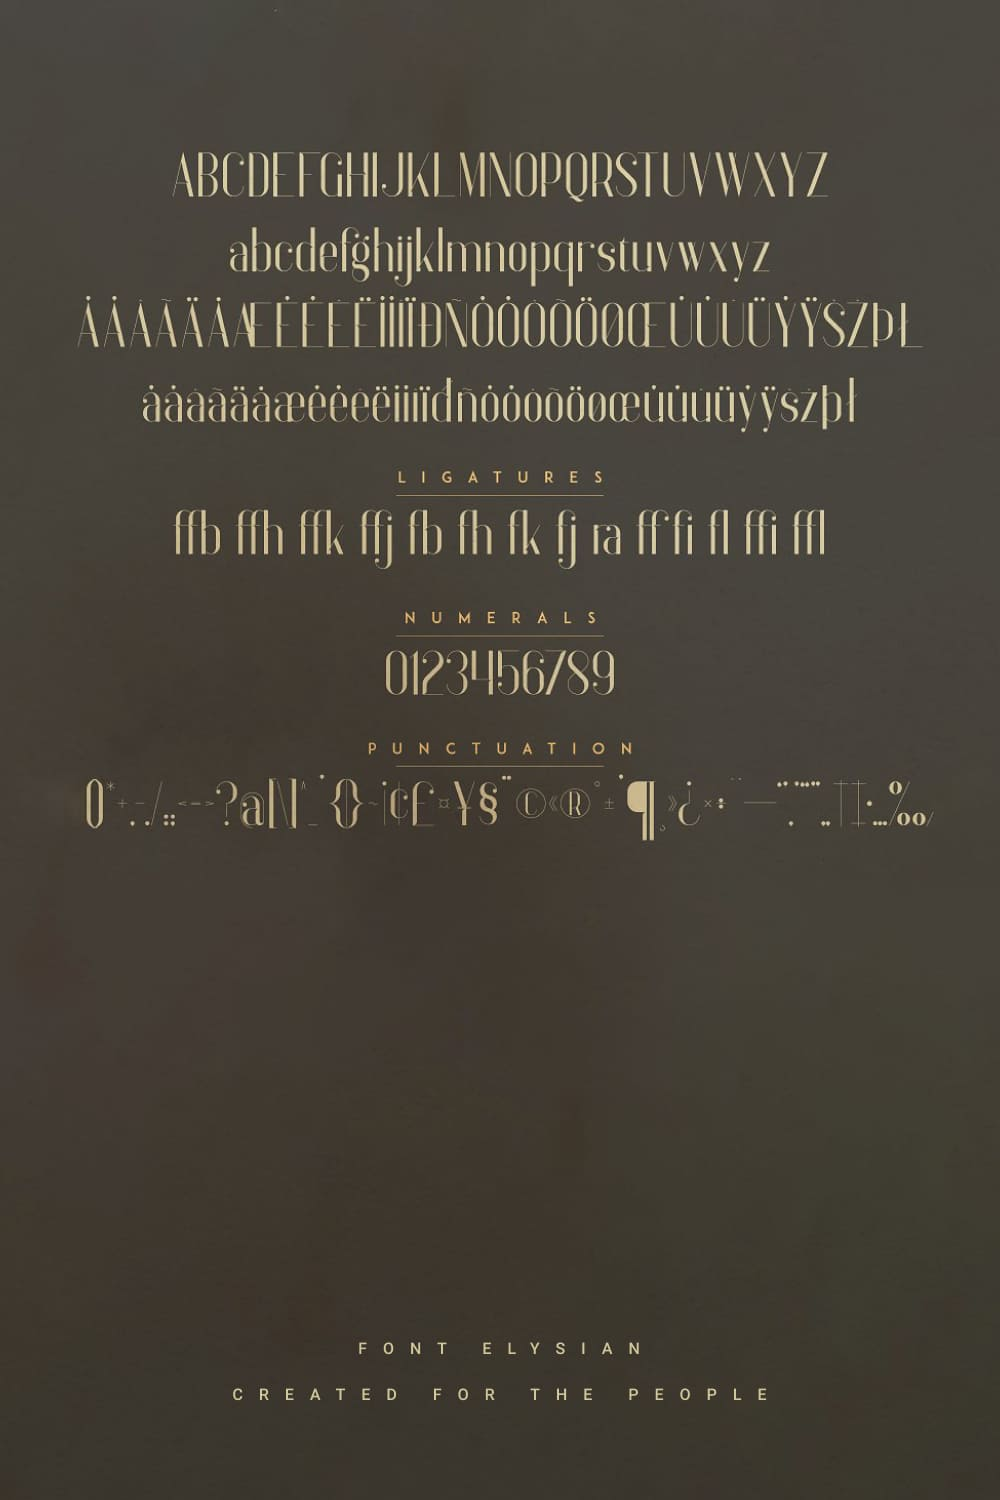 01. Anteric College Font 3 weights Pinterest image.